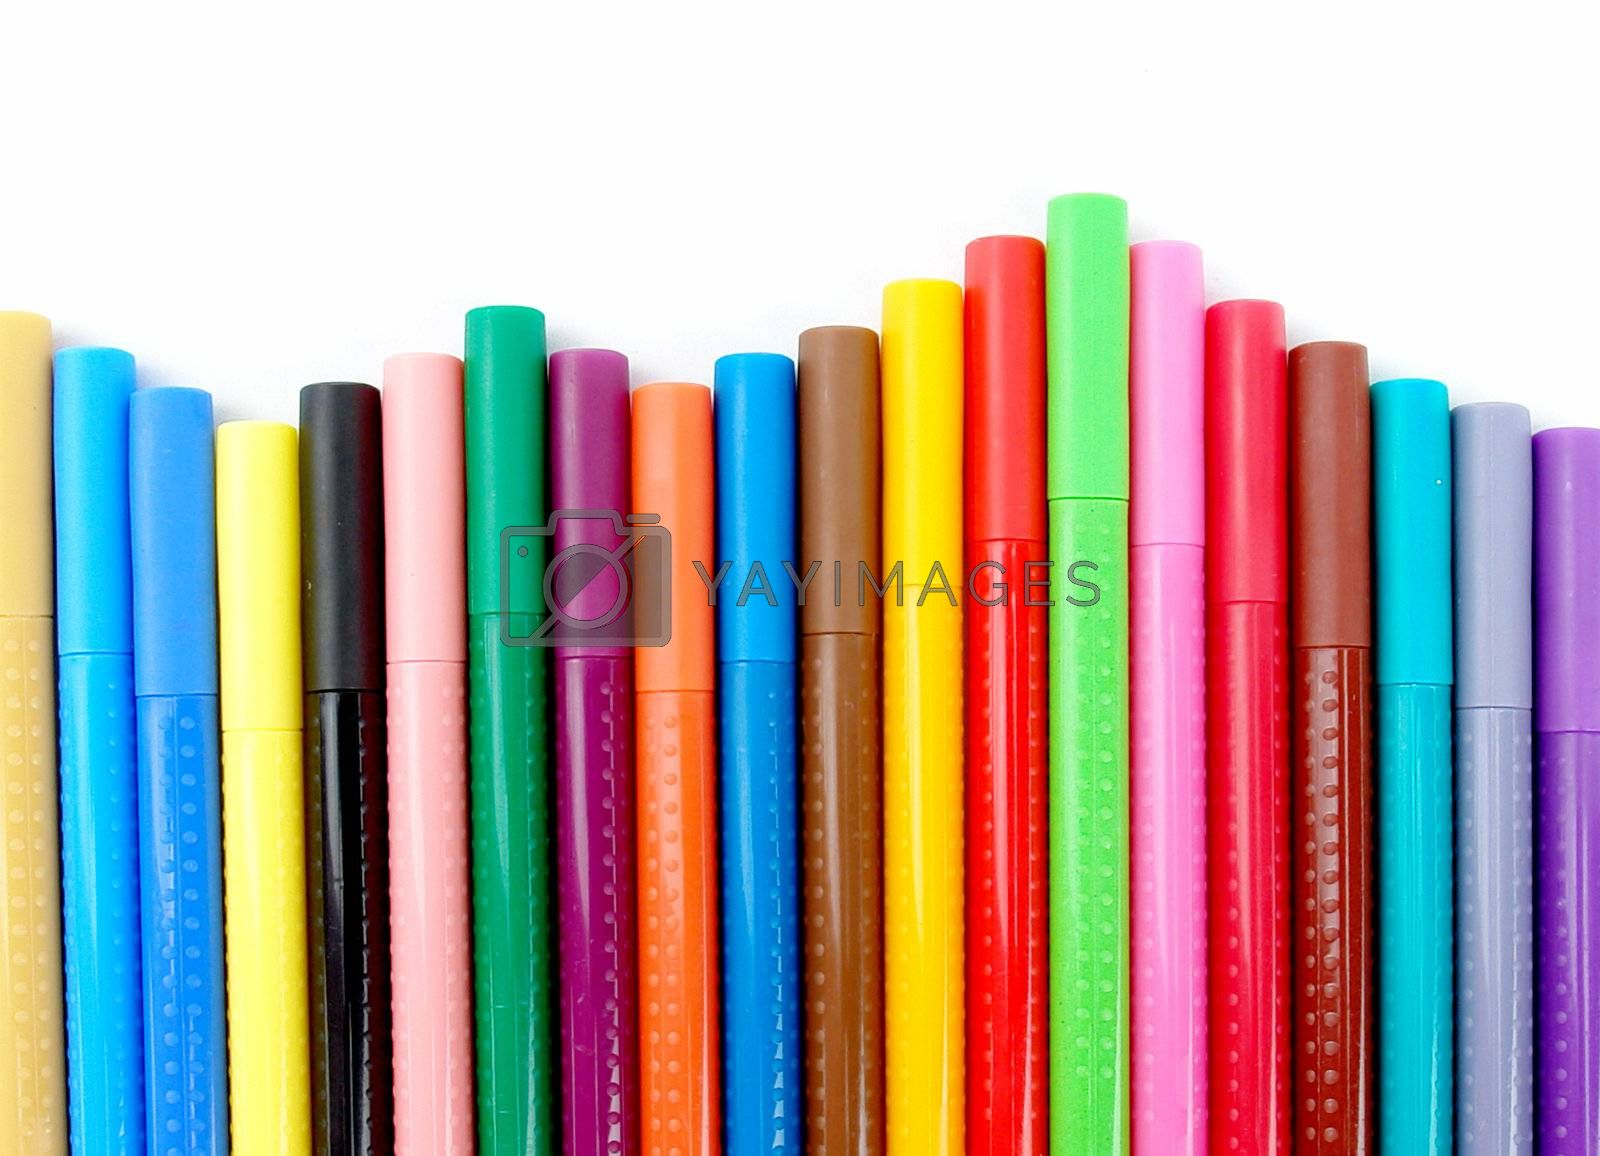 bookmark lines with red, green, blue, black and orange colors on white background